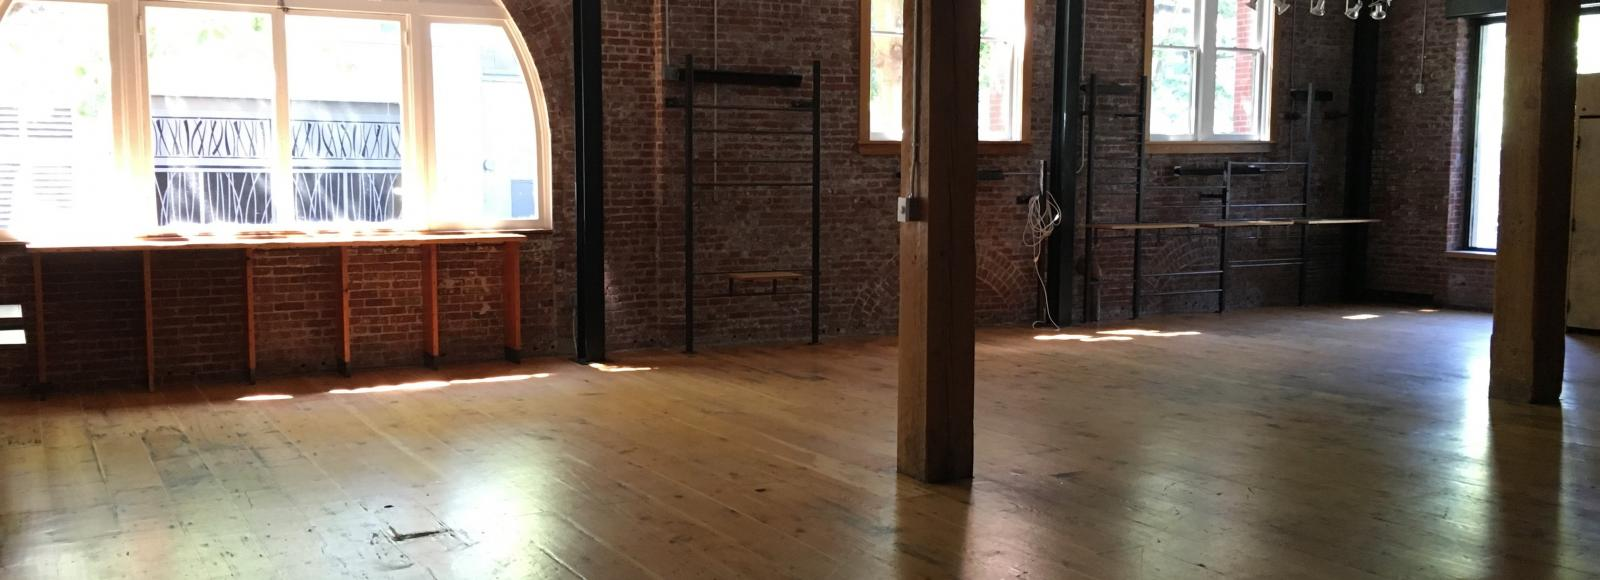 Empty venue with wood and brick